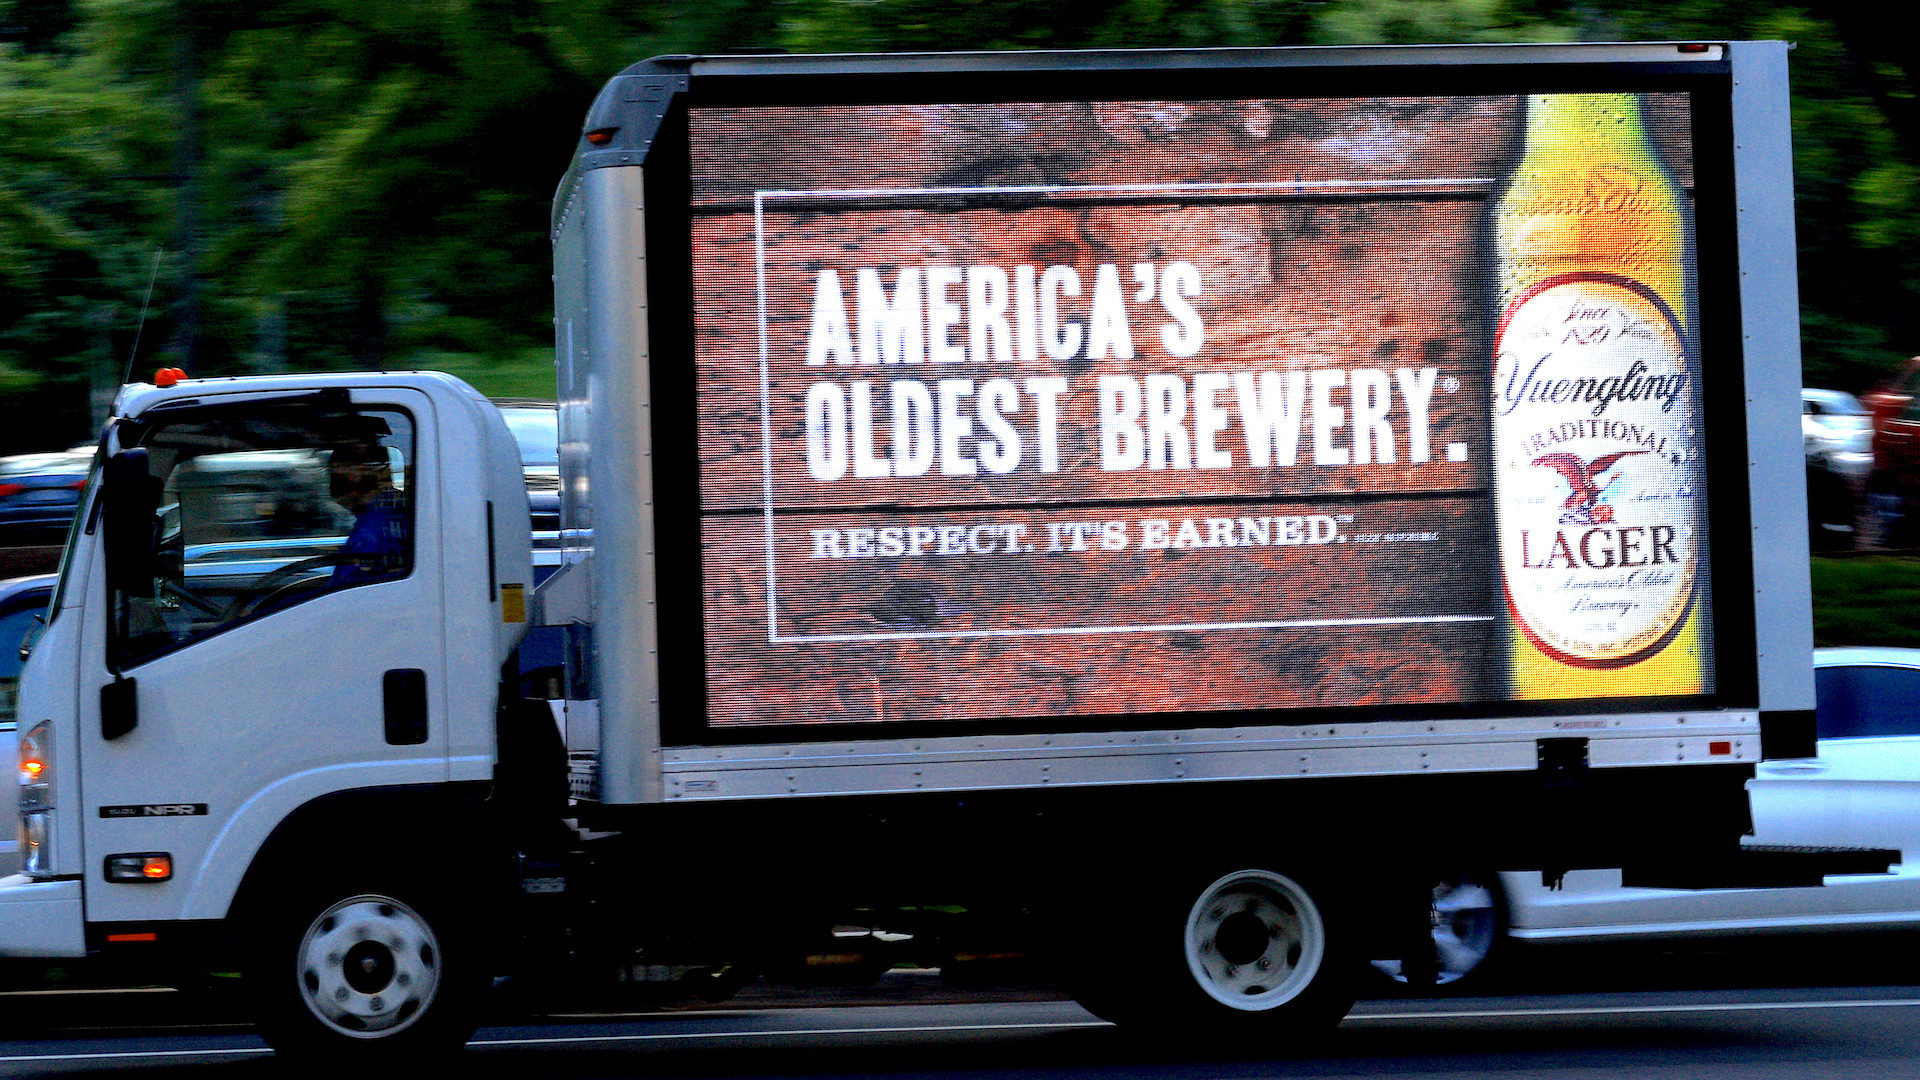 YUENGLING - PIC - 011 - MATV BILLBOARDS